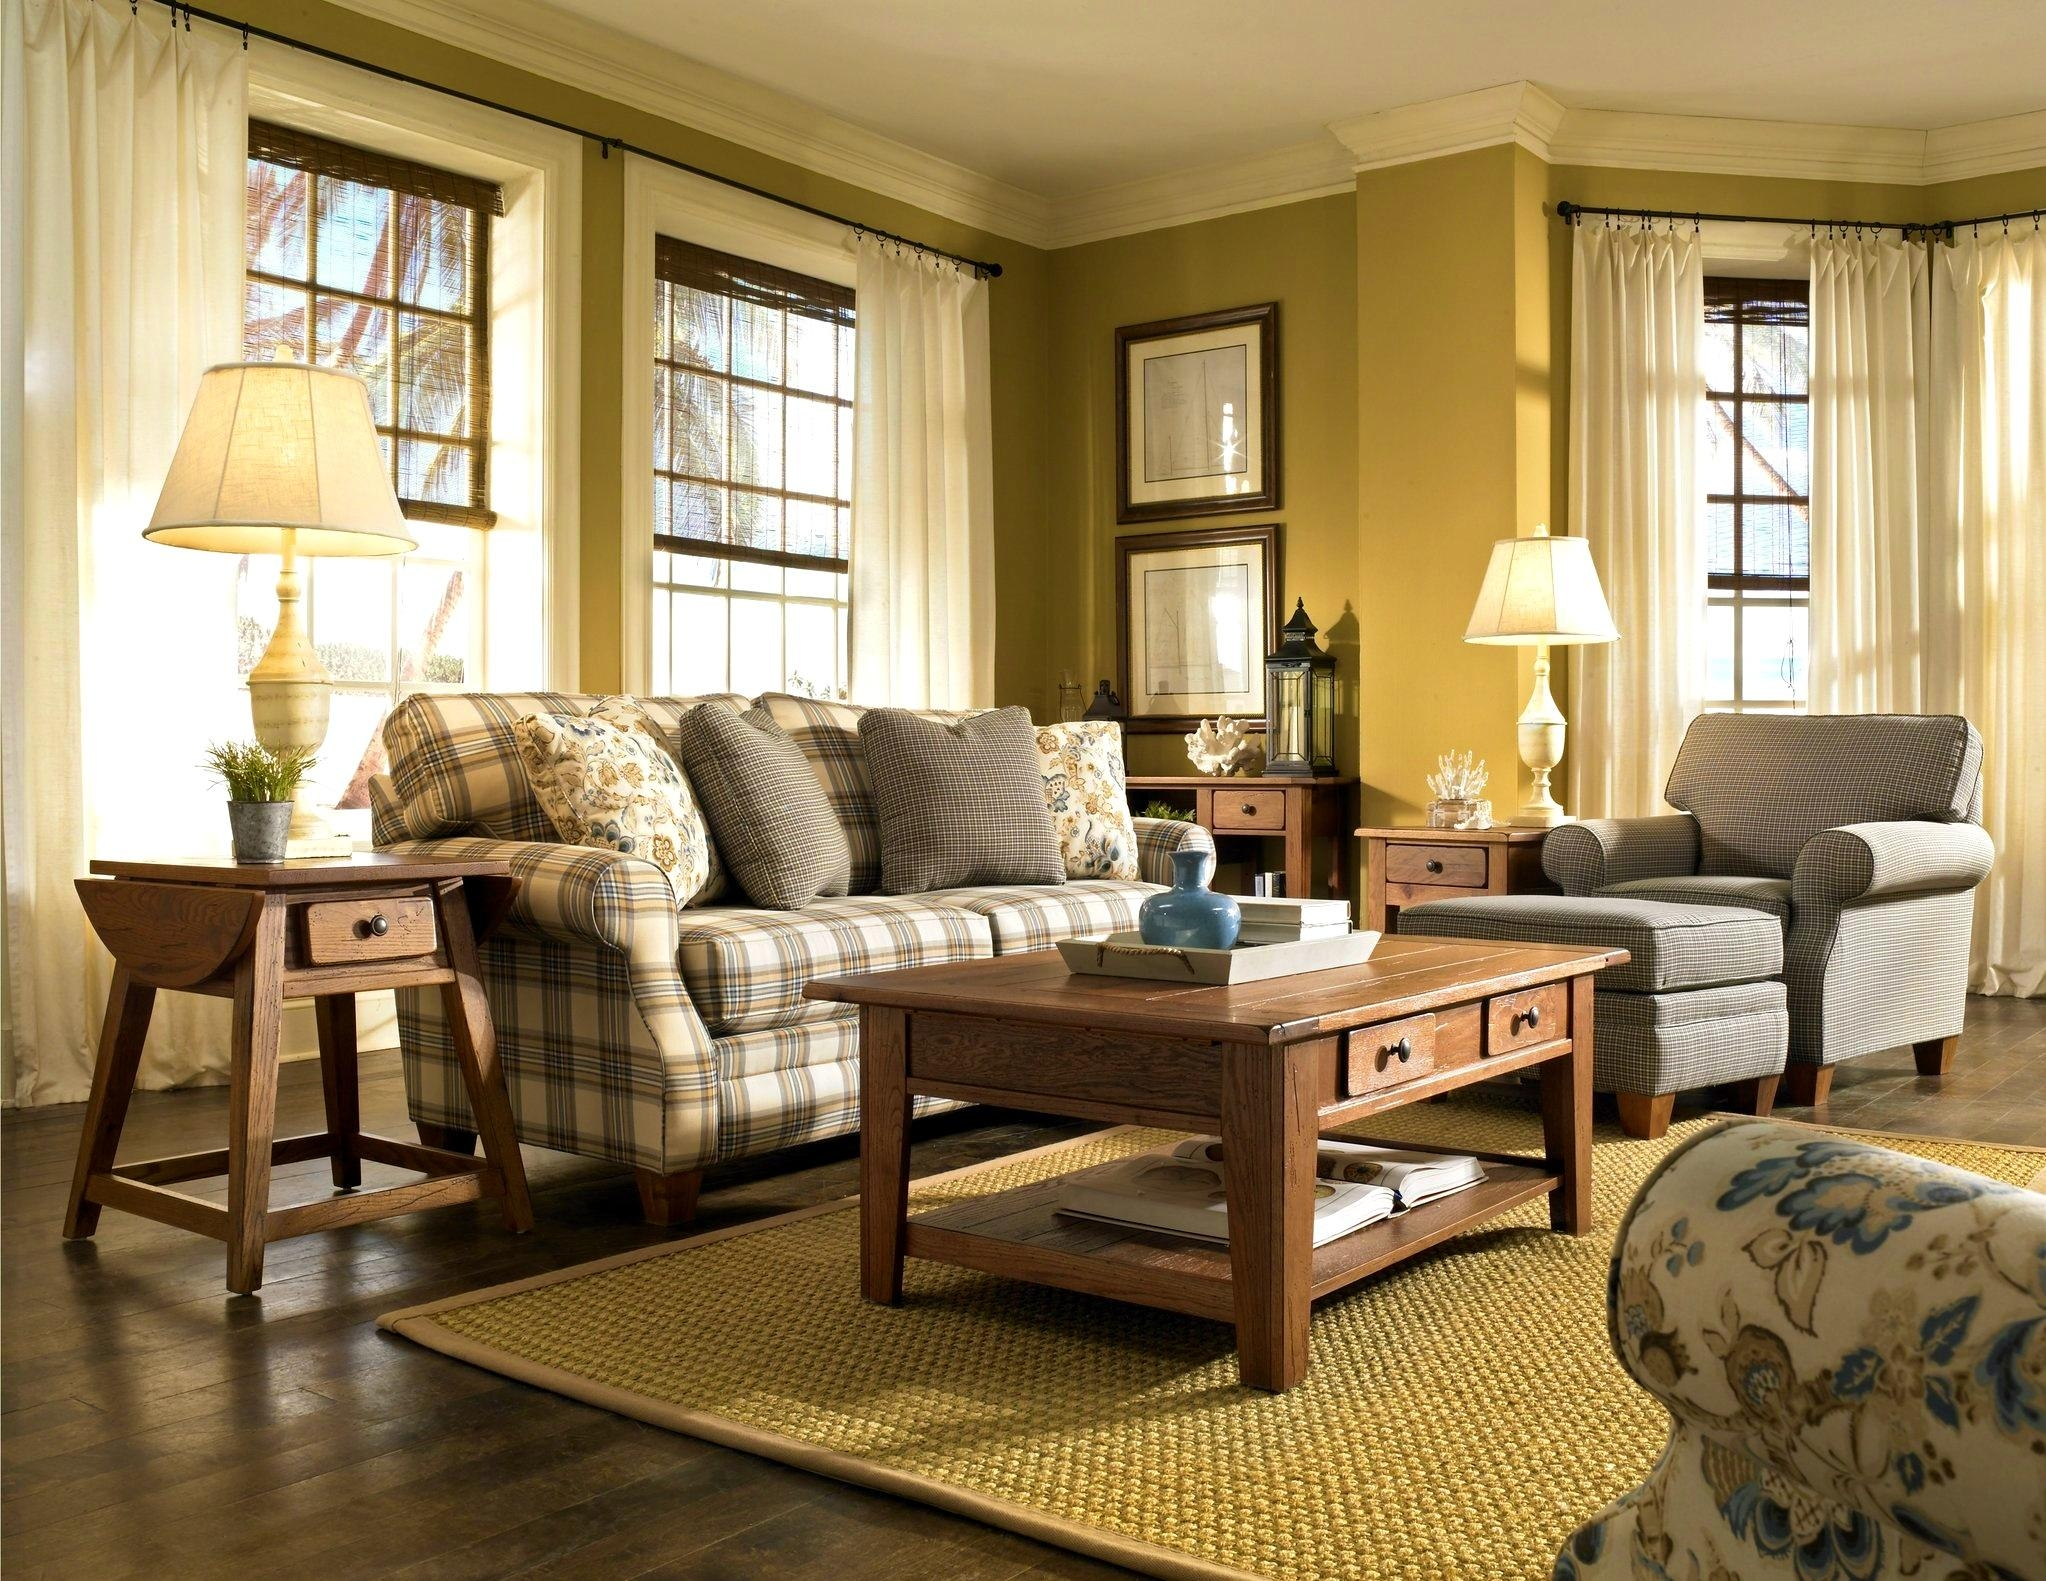 Sofas Center : Country Style Sofas And Loveseats Plaid Or Couches Inside Country Style Sofas And Loveseats (Photo 5 of 20)